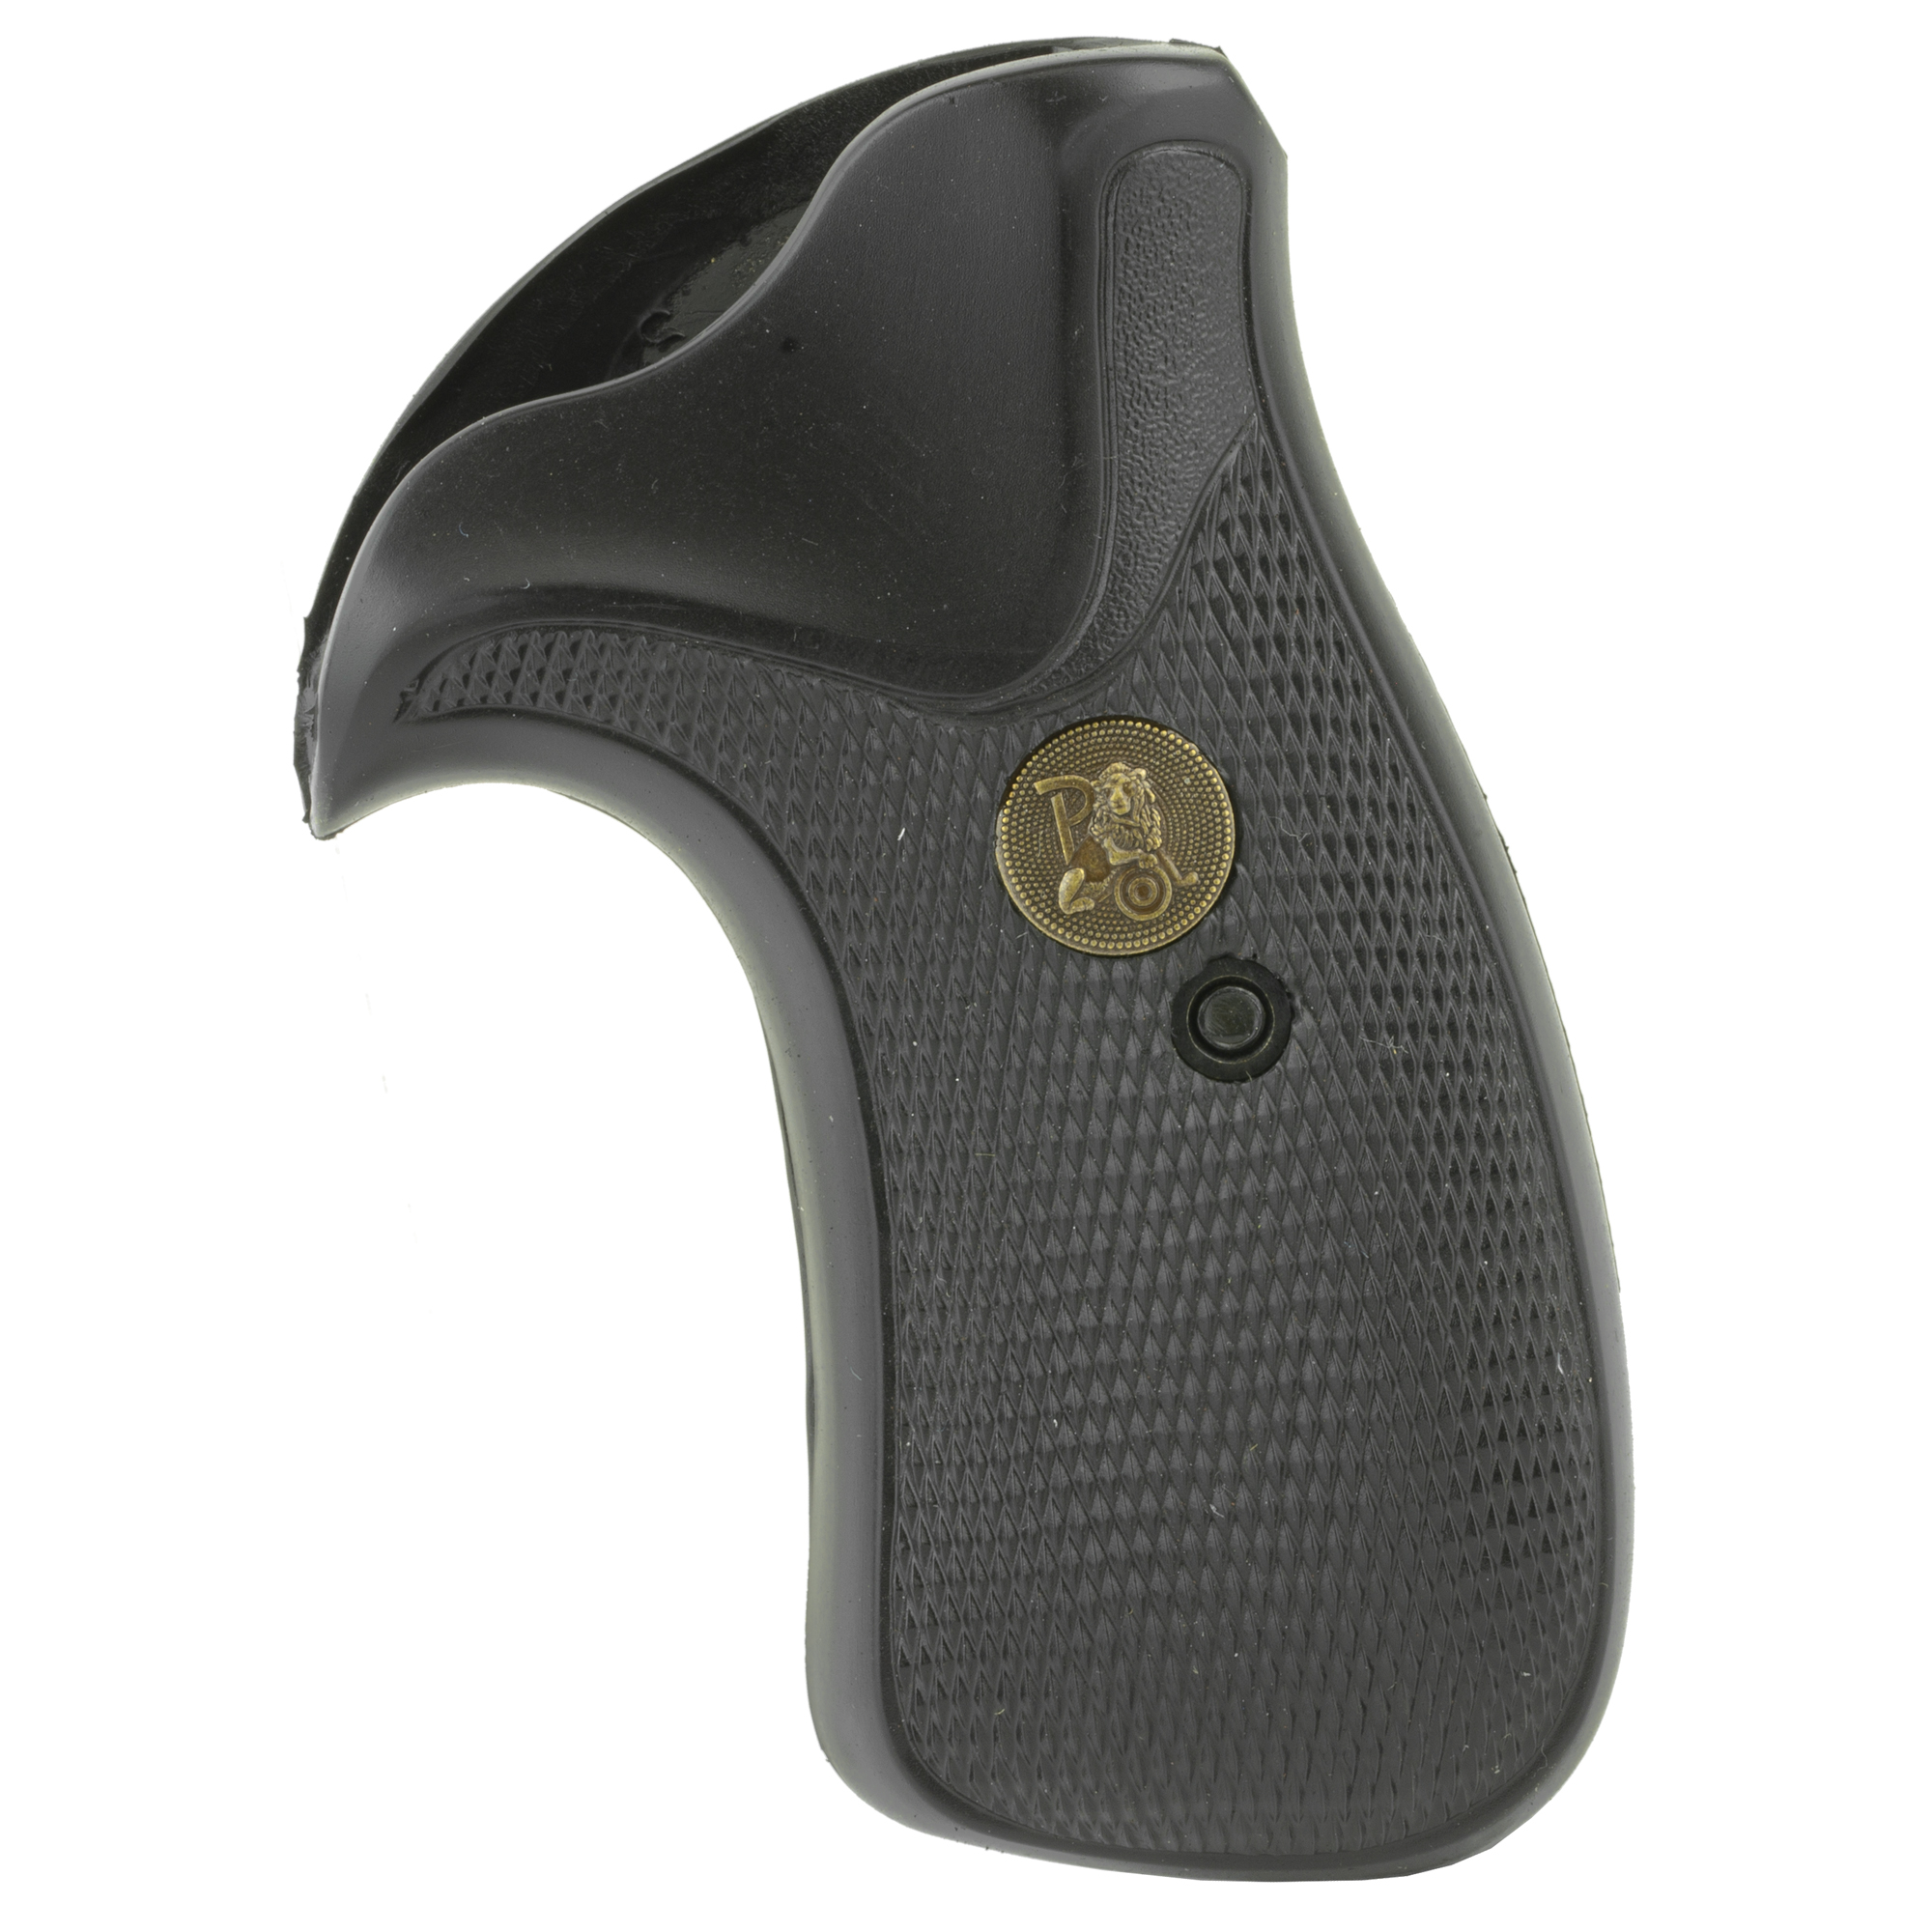 """Pachmayr's Compac grips are made from a specially formulated black rubber compound and are designed to maintain concealability. Although compact in design"""" Compac grips still give a shooter total control. Compac grips provide a secure"""" non-slip finish."""